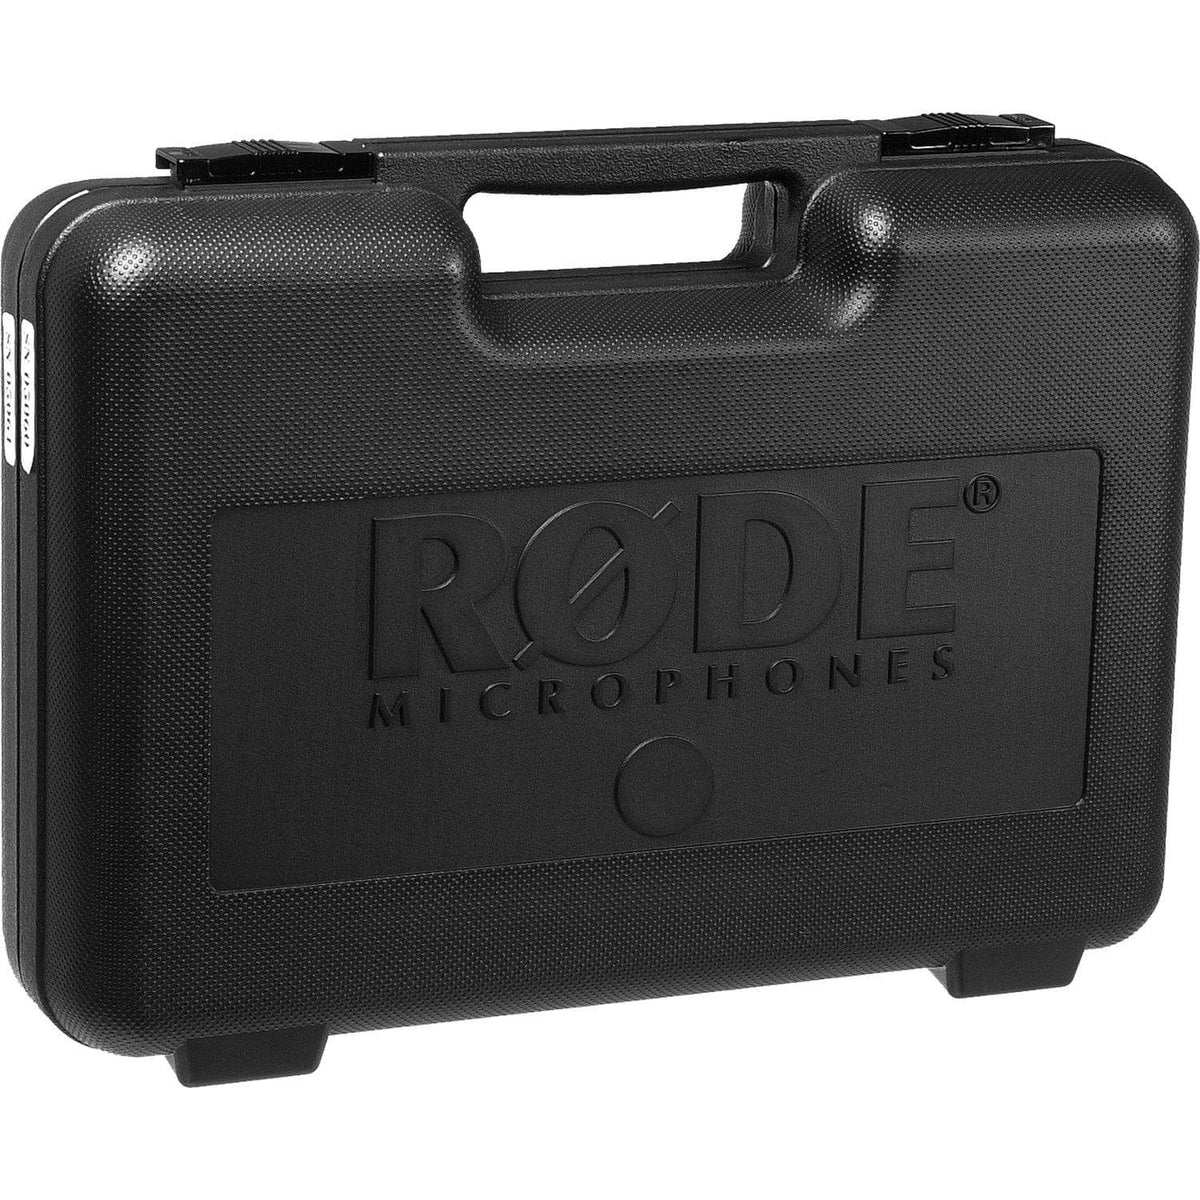 Rode RC5 Hard Case